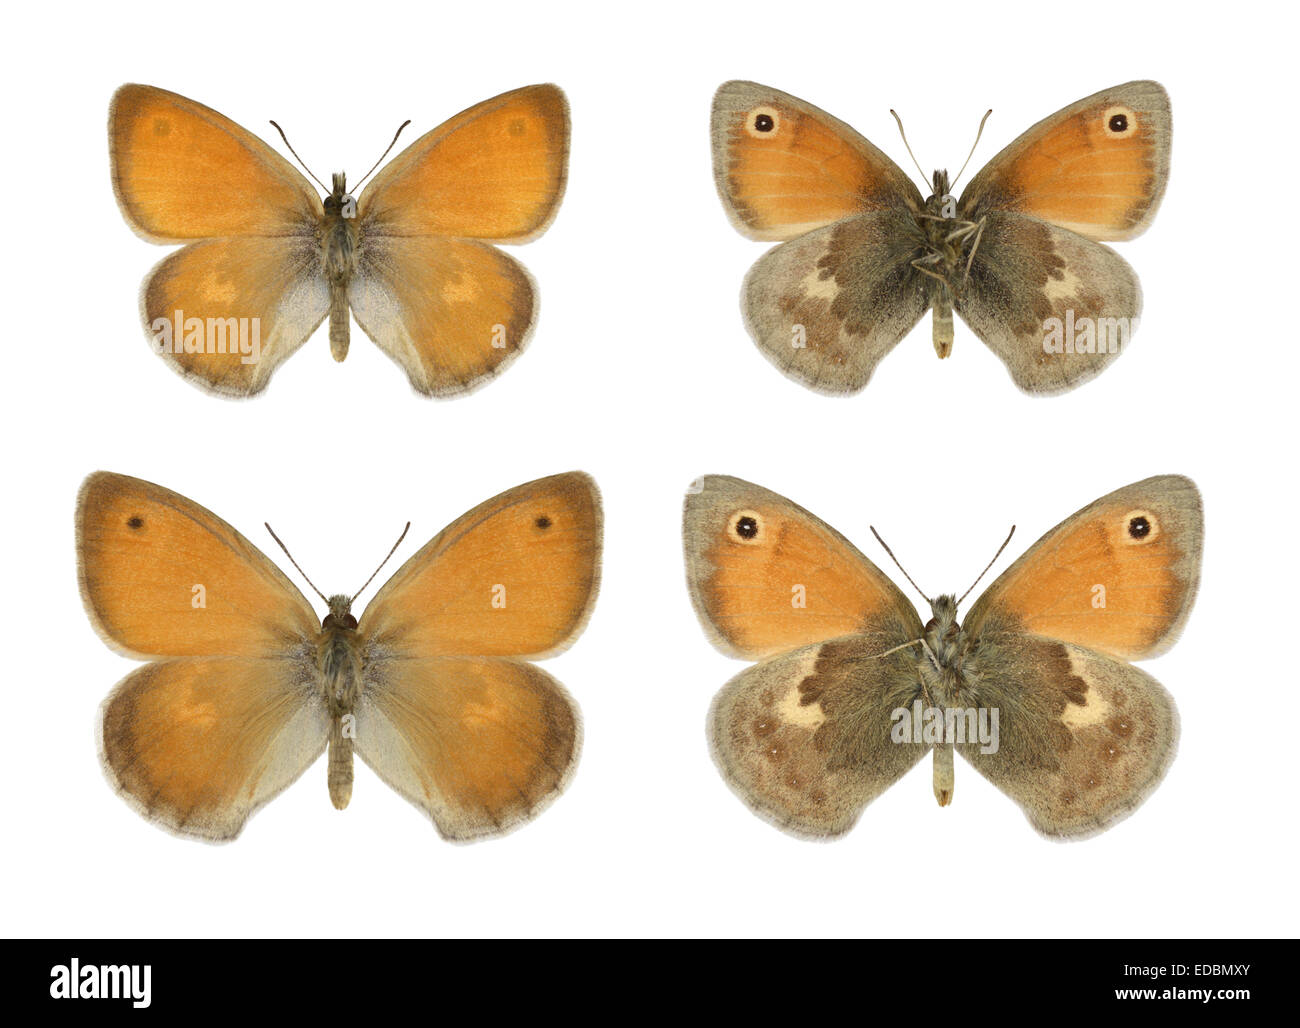 Small Heath - Coenonympha pamphilus - male (top row) - female (bottom row). - Stock Image